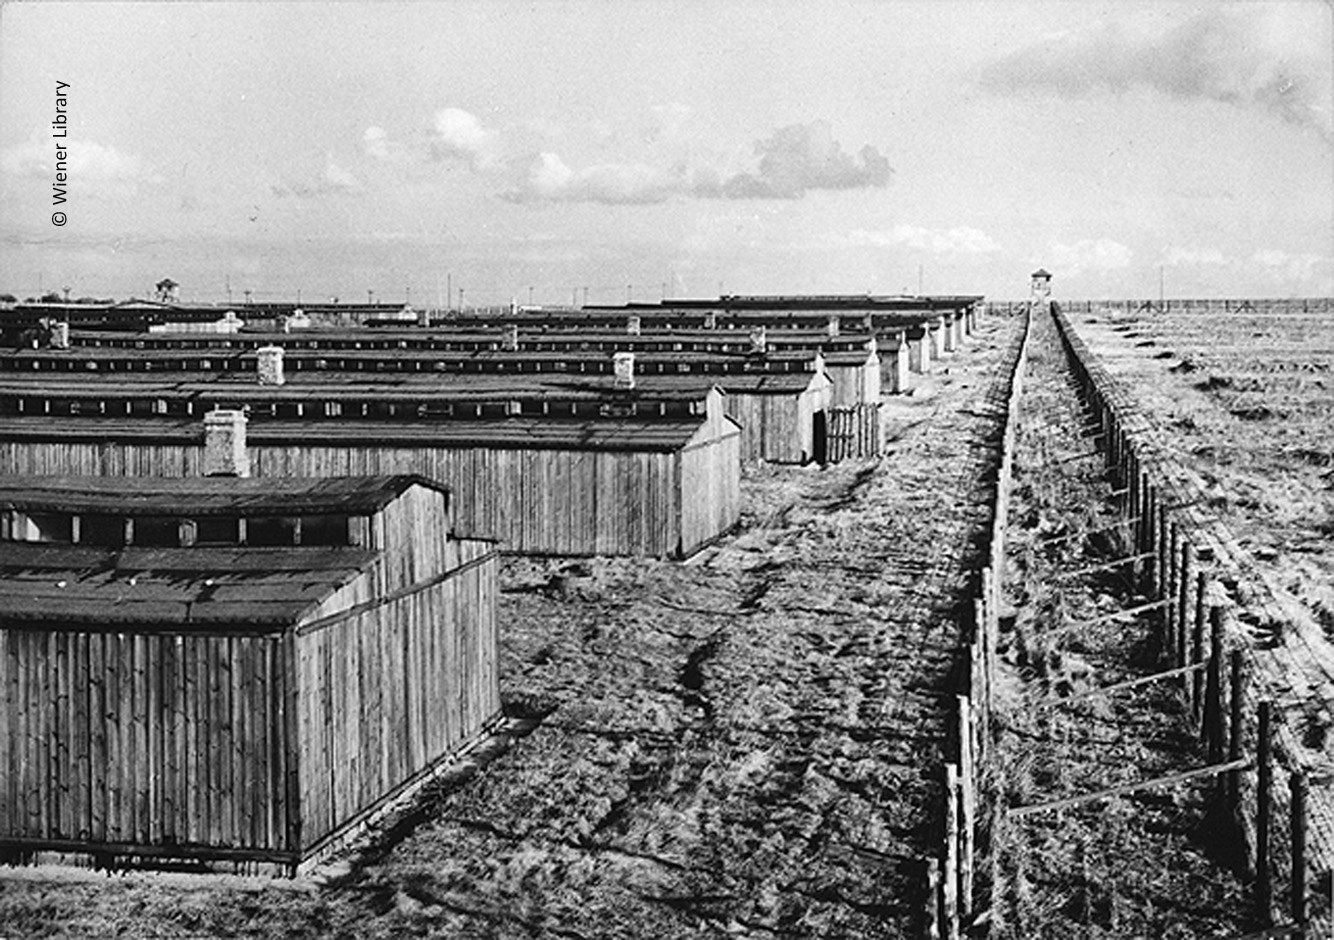 a look at the dreaded nazi concentration camps Concentration camps in nazi germany served a number of purposes first, these camps were used to jail those who opposed hitler's government or were thought to.